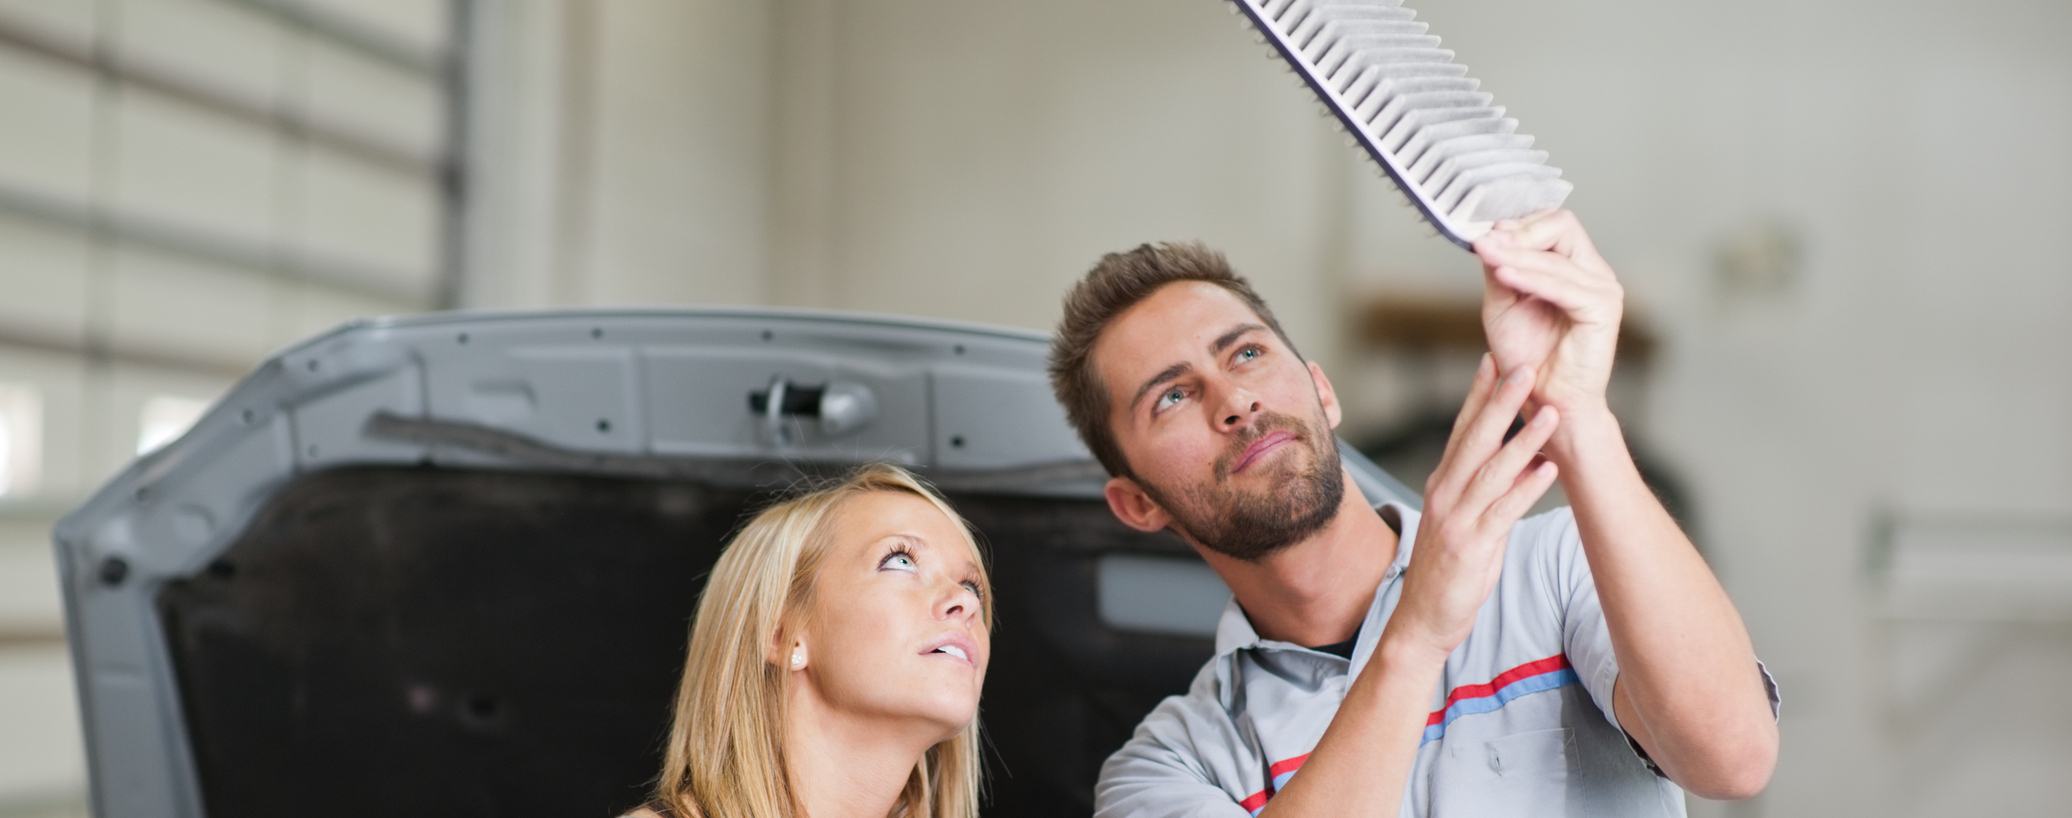 Cabin Air Filter Replacement Service in Webster, TX